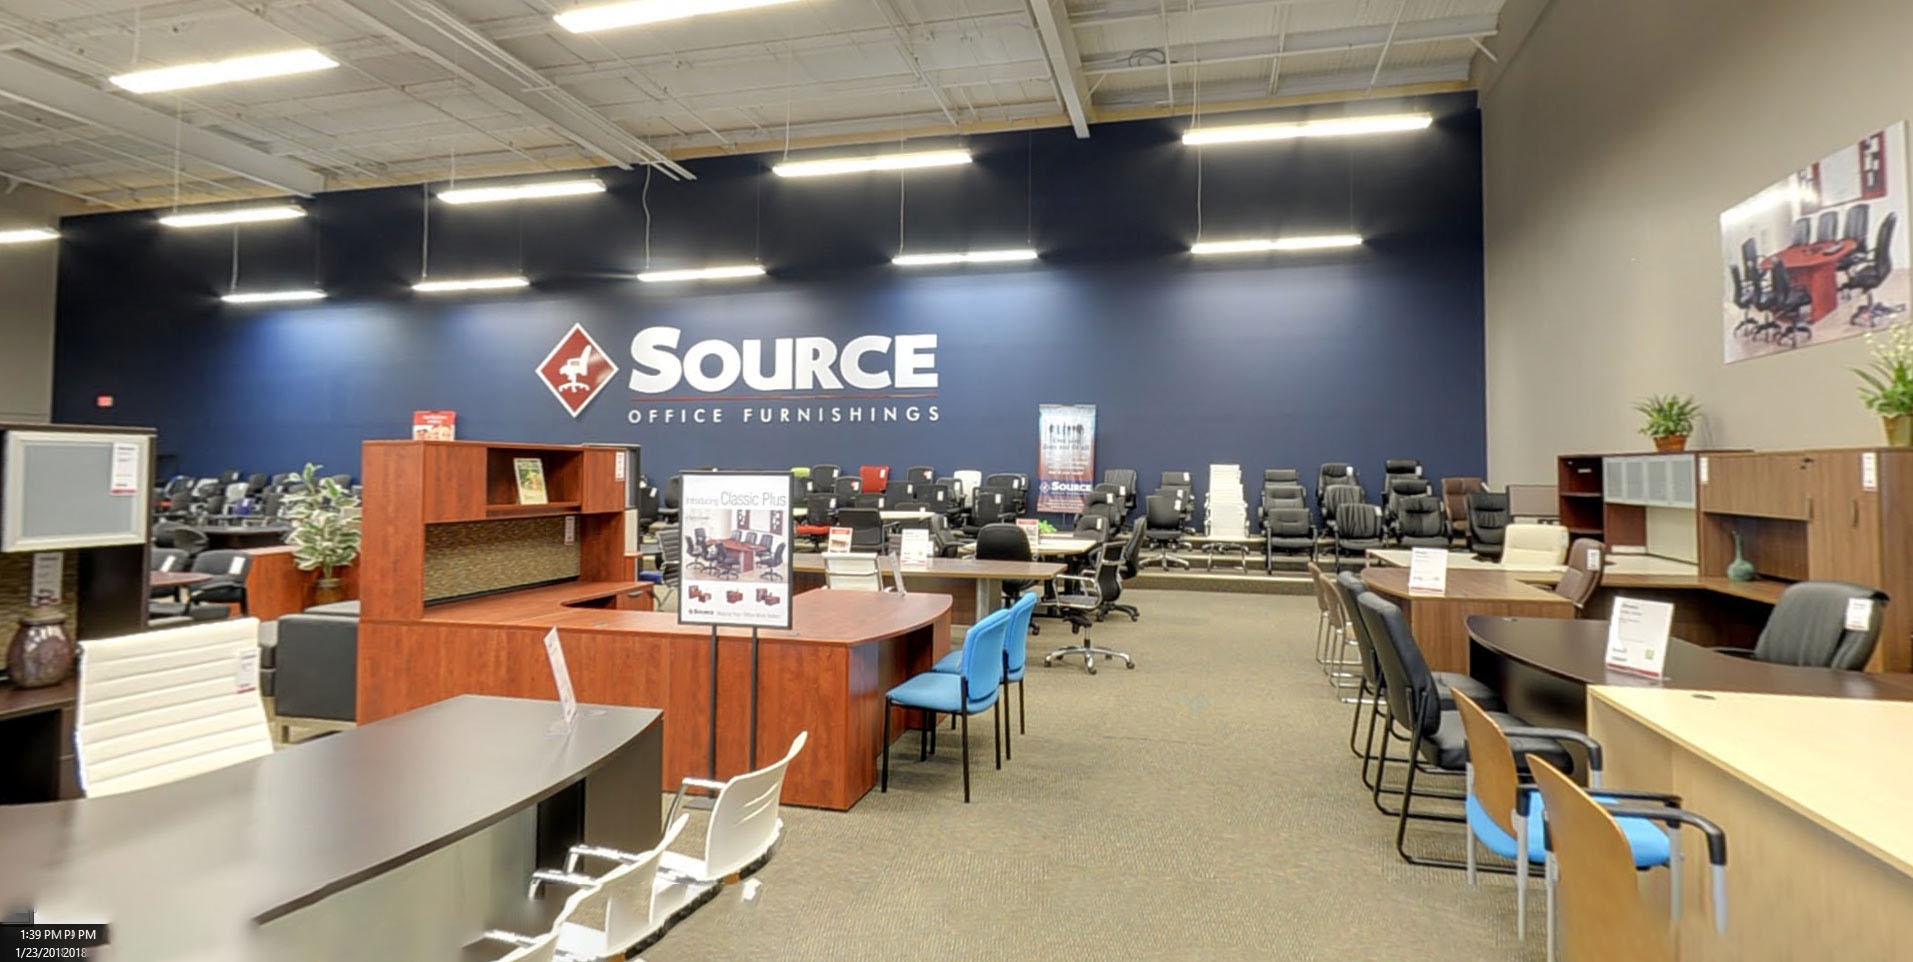 Source office furniture saskatoon store location and info for Office furniture stores